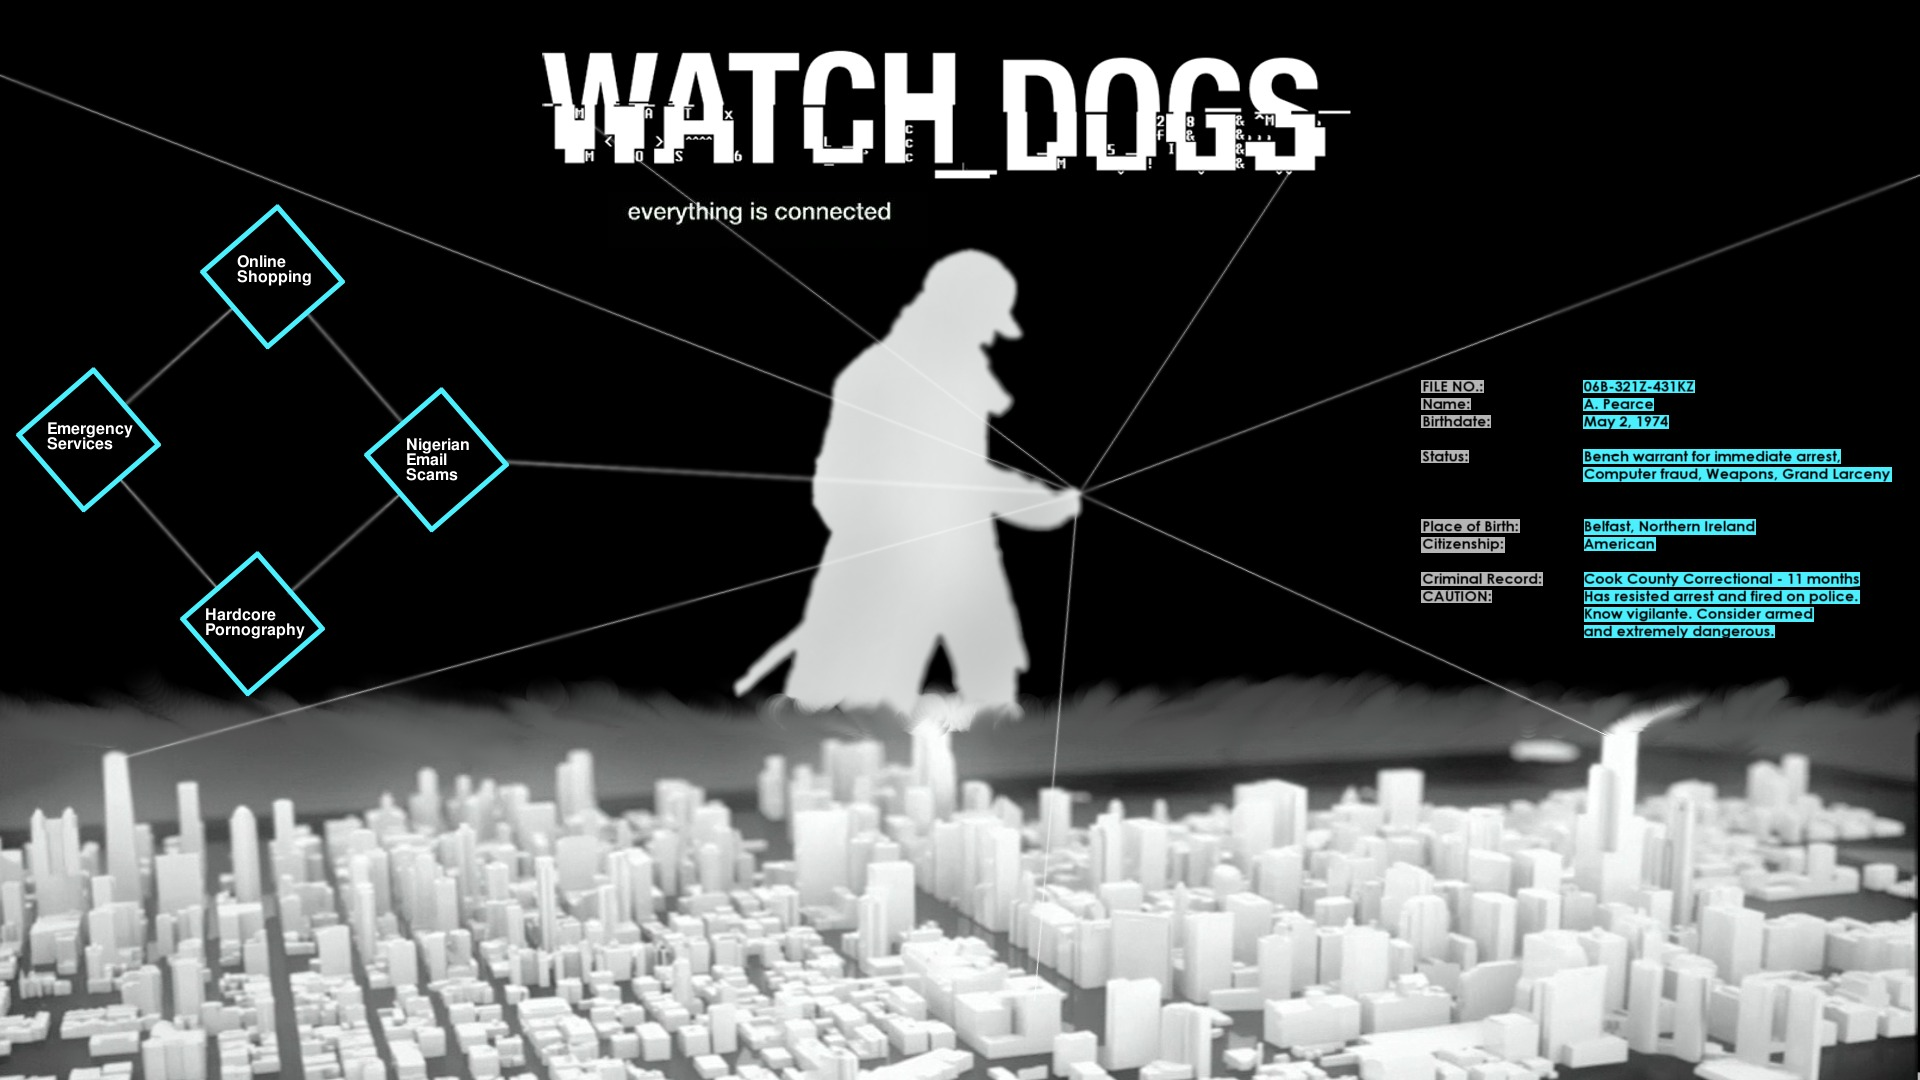 (Updated) Ubisoft Abandons Watch Dogs Trademark